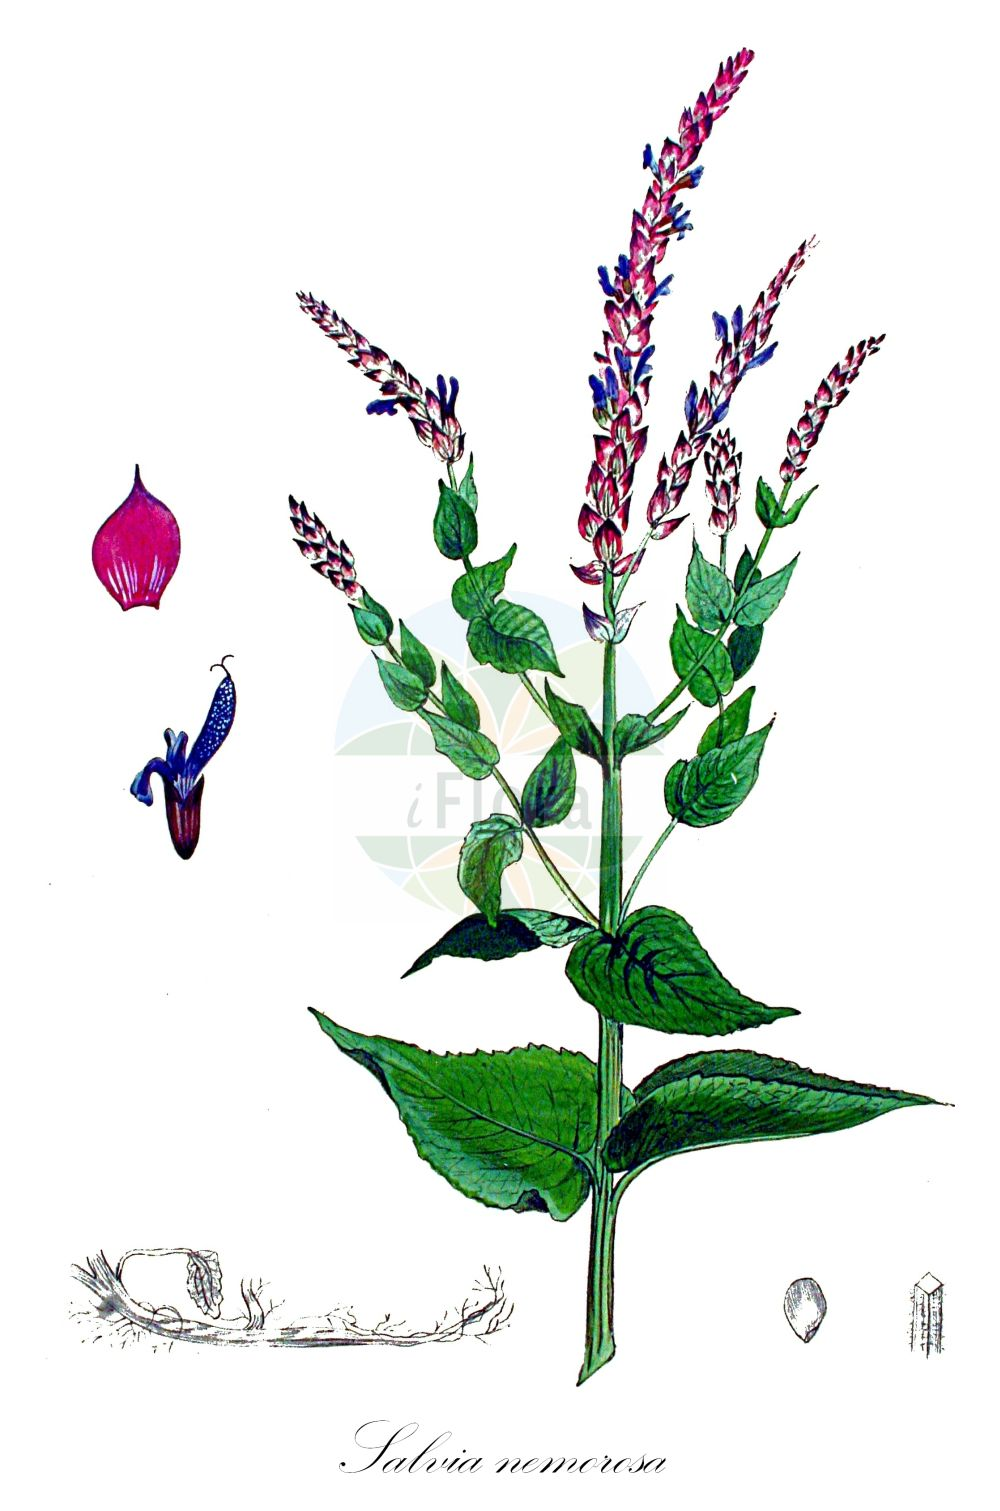 Historische Abbildung von Salvia nemorosa (Hain-Salbei - Balkan Clary). Das Bild zeigt Blatt, Bluete, Frucht und Same. ---- Historical Drawing of Salvia nemorosa (Hain-Salbei - Balkan Clary).The image is showing leaf, flower, fruit and seed.(Salvia nemorosa,Hain-Salbei,Balkan Clary,Sclarea nemorosa,,Wald-Salbei,Pasture Sage,Salvia,Salbei,Sage,Lamiaceae,Lippenbluetengewaechse;Lippenbluetler,Nettle family,Blatt,Bluete,Frucht,Same,leaf,flower,fruit,seed,Kops (1800-1934))